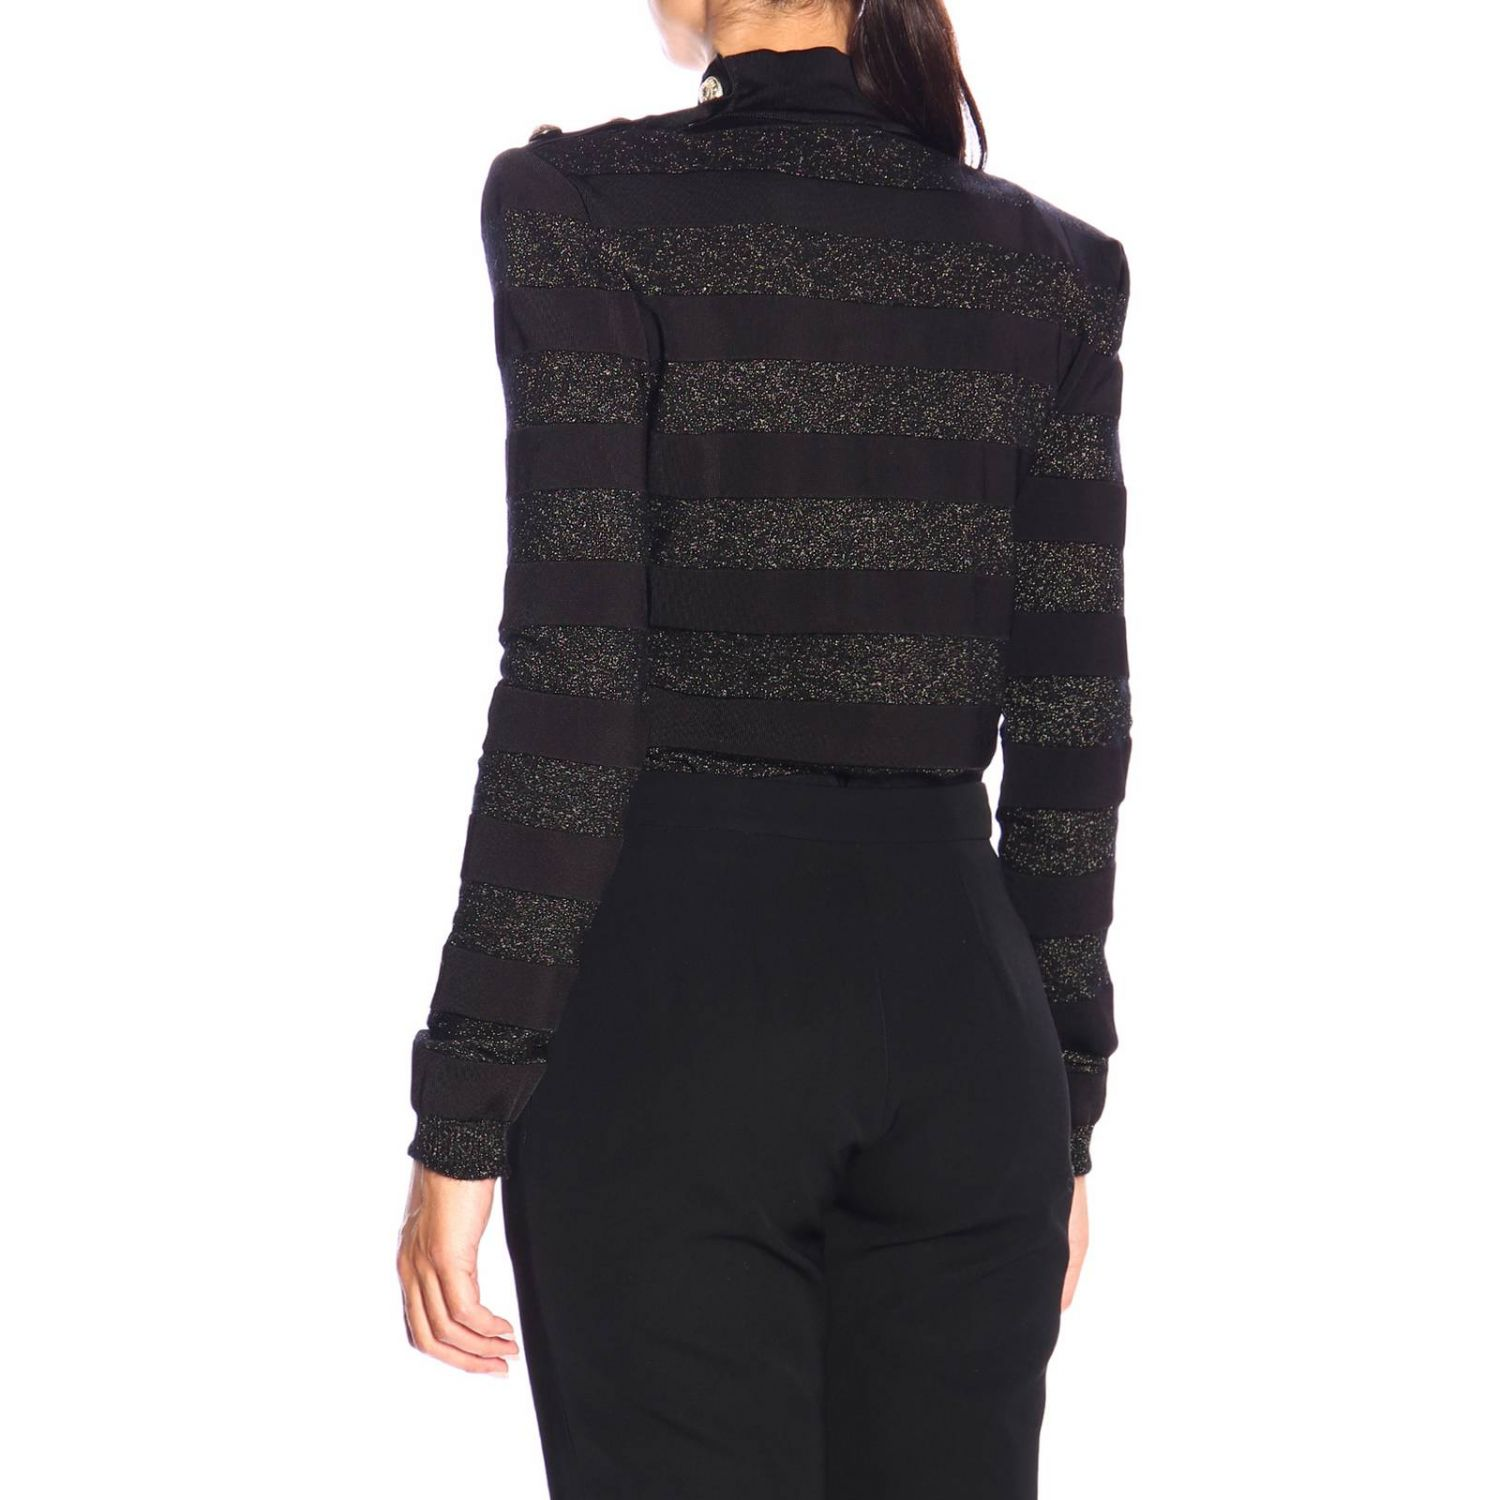 Jumper Balmain: Balmain turtleneck sweater with lurex bands and jewel buttons black 3